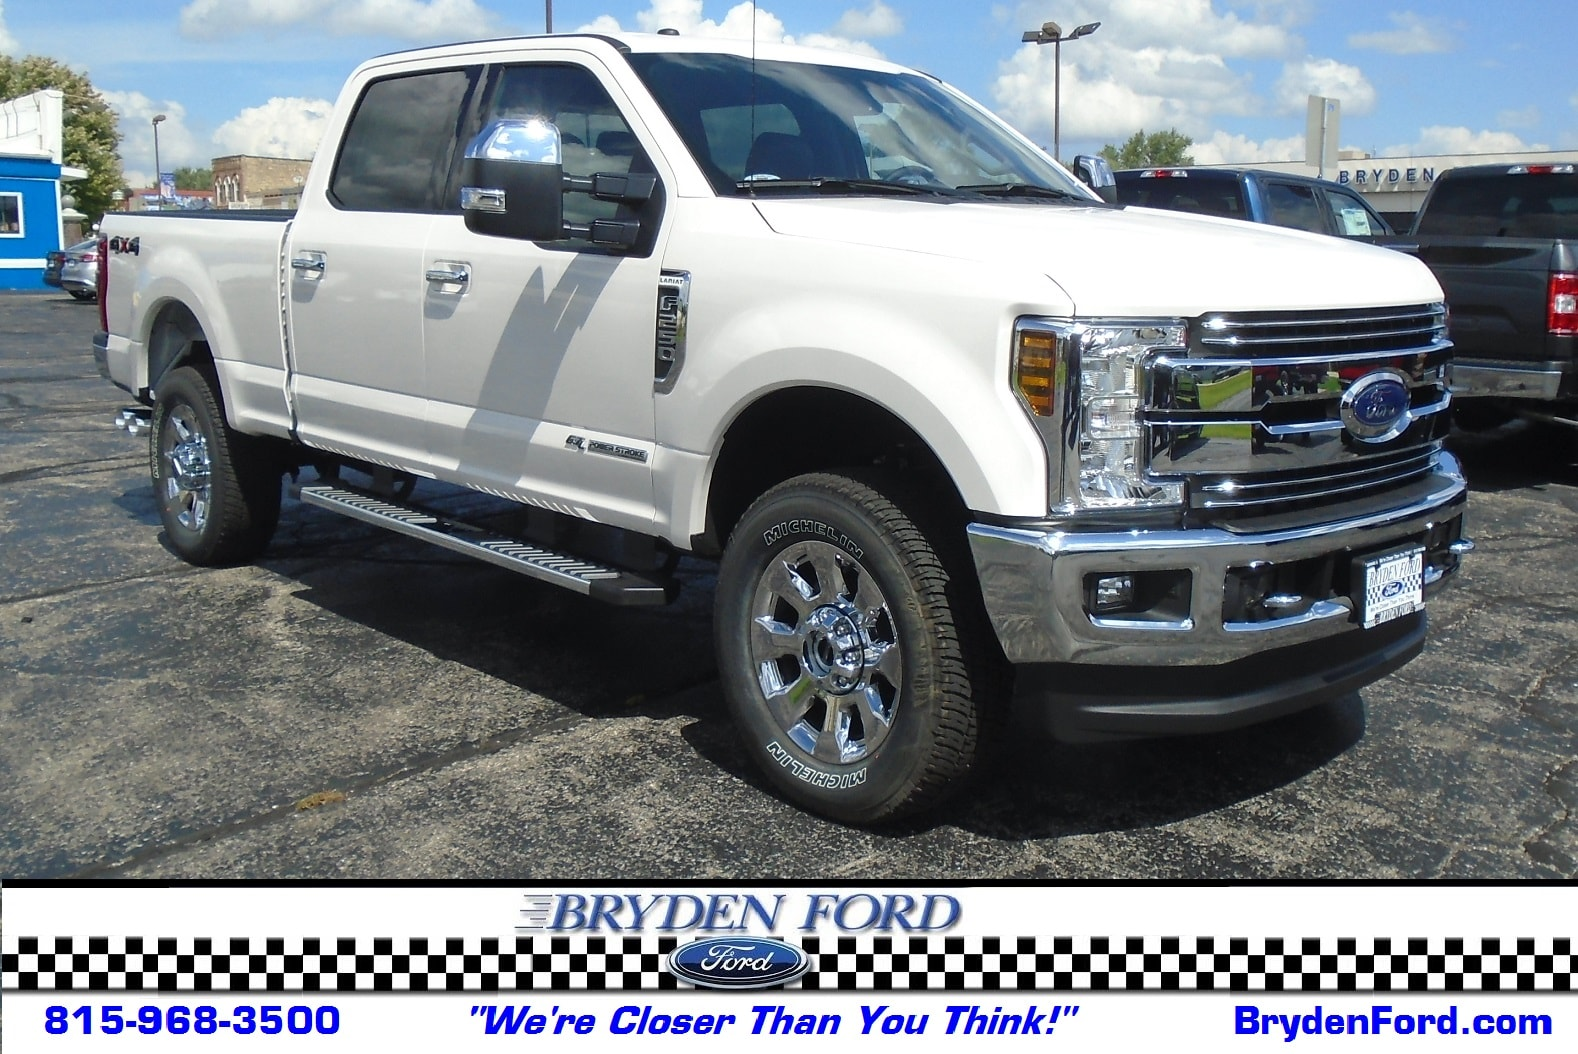 2018 Ford Superduty F250 Lariat 4X4 6.5' Bed Truck